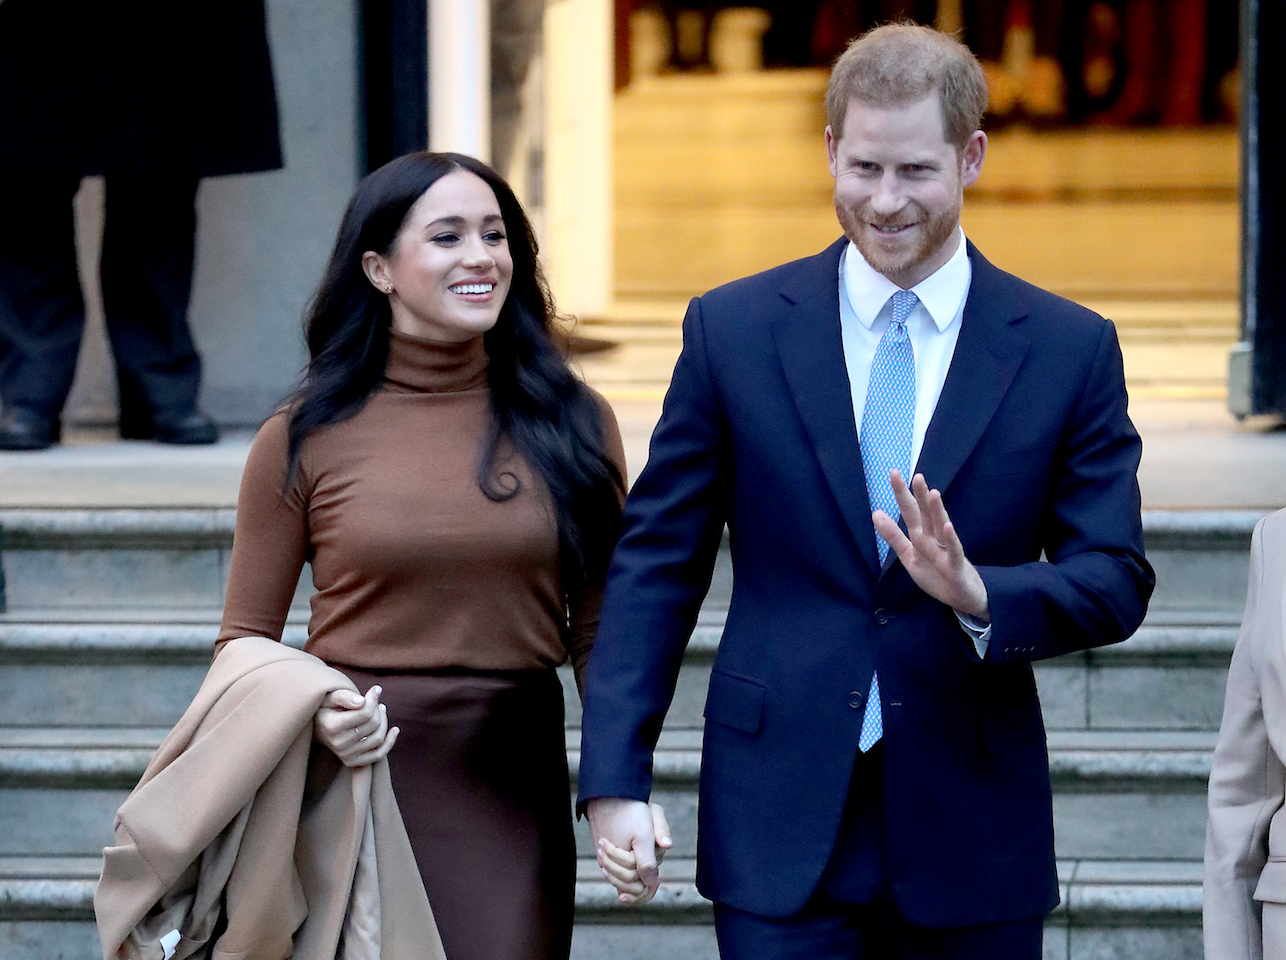 Meghan Markle Prince Harry ongoing discussions word Royal-meghan wearing a brown turtleneck and harry wearing a navy blue suit and light blue tie and white shirt walk hand-in-hand